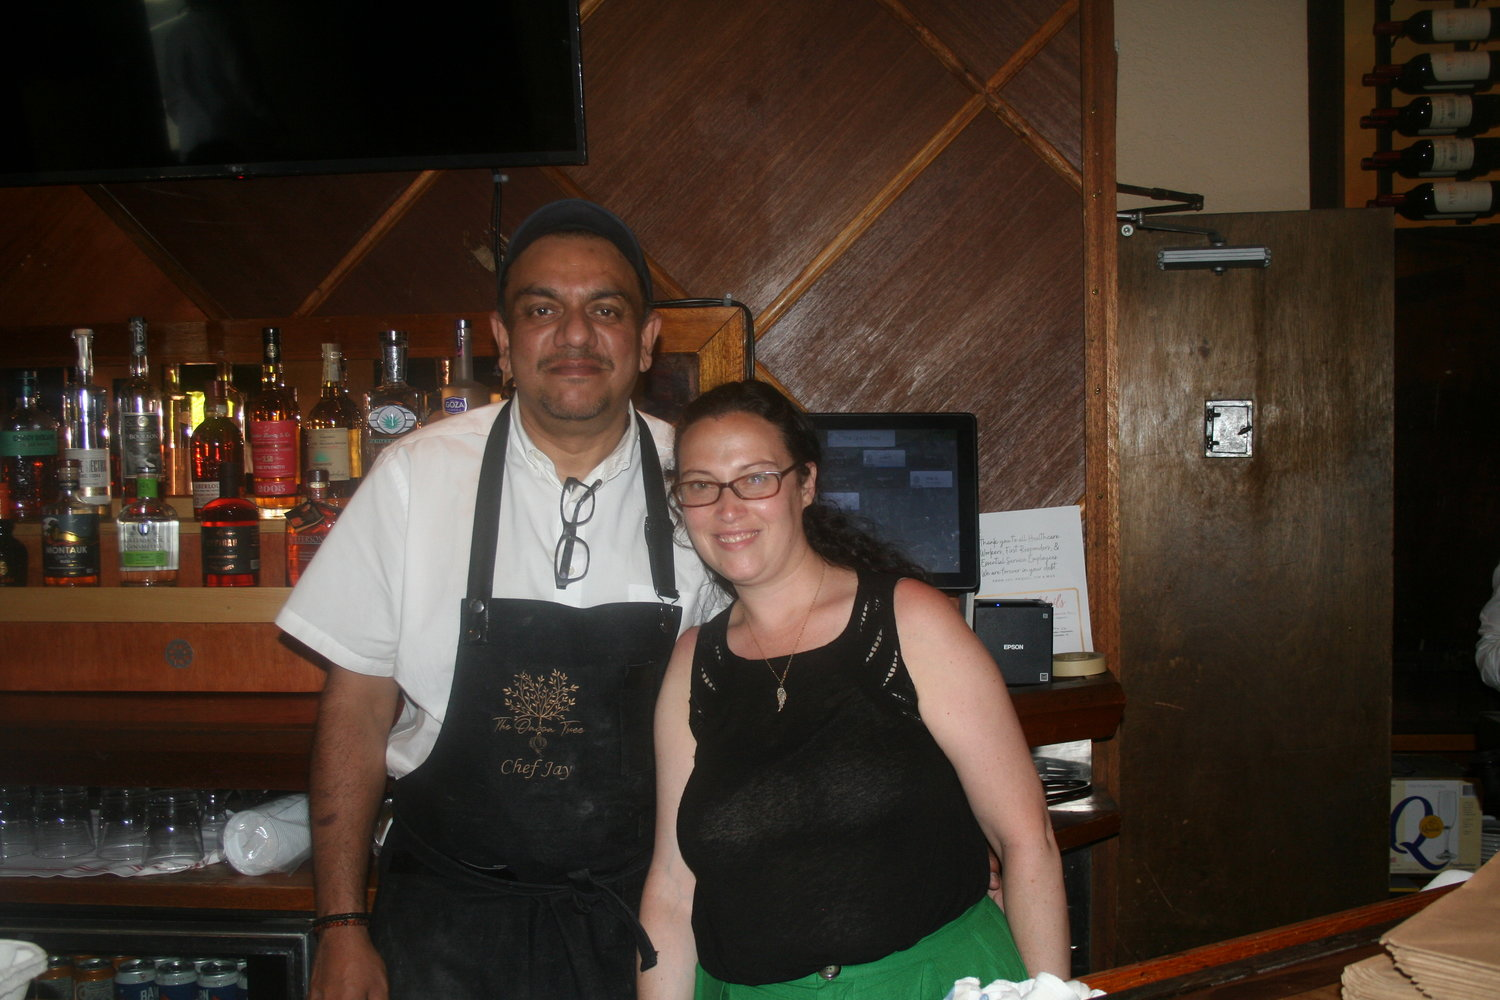 Since it opened up only two weeks before they were forced to close, Onion Tree owners Jay, left, and Raquel Jadeja said they are excited to serve many customers for the first time.